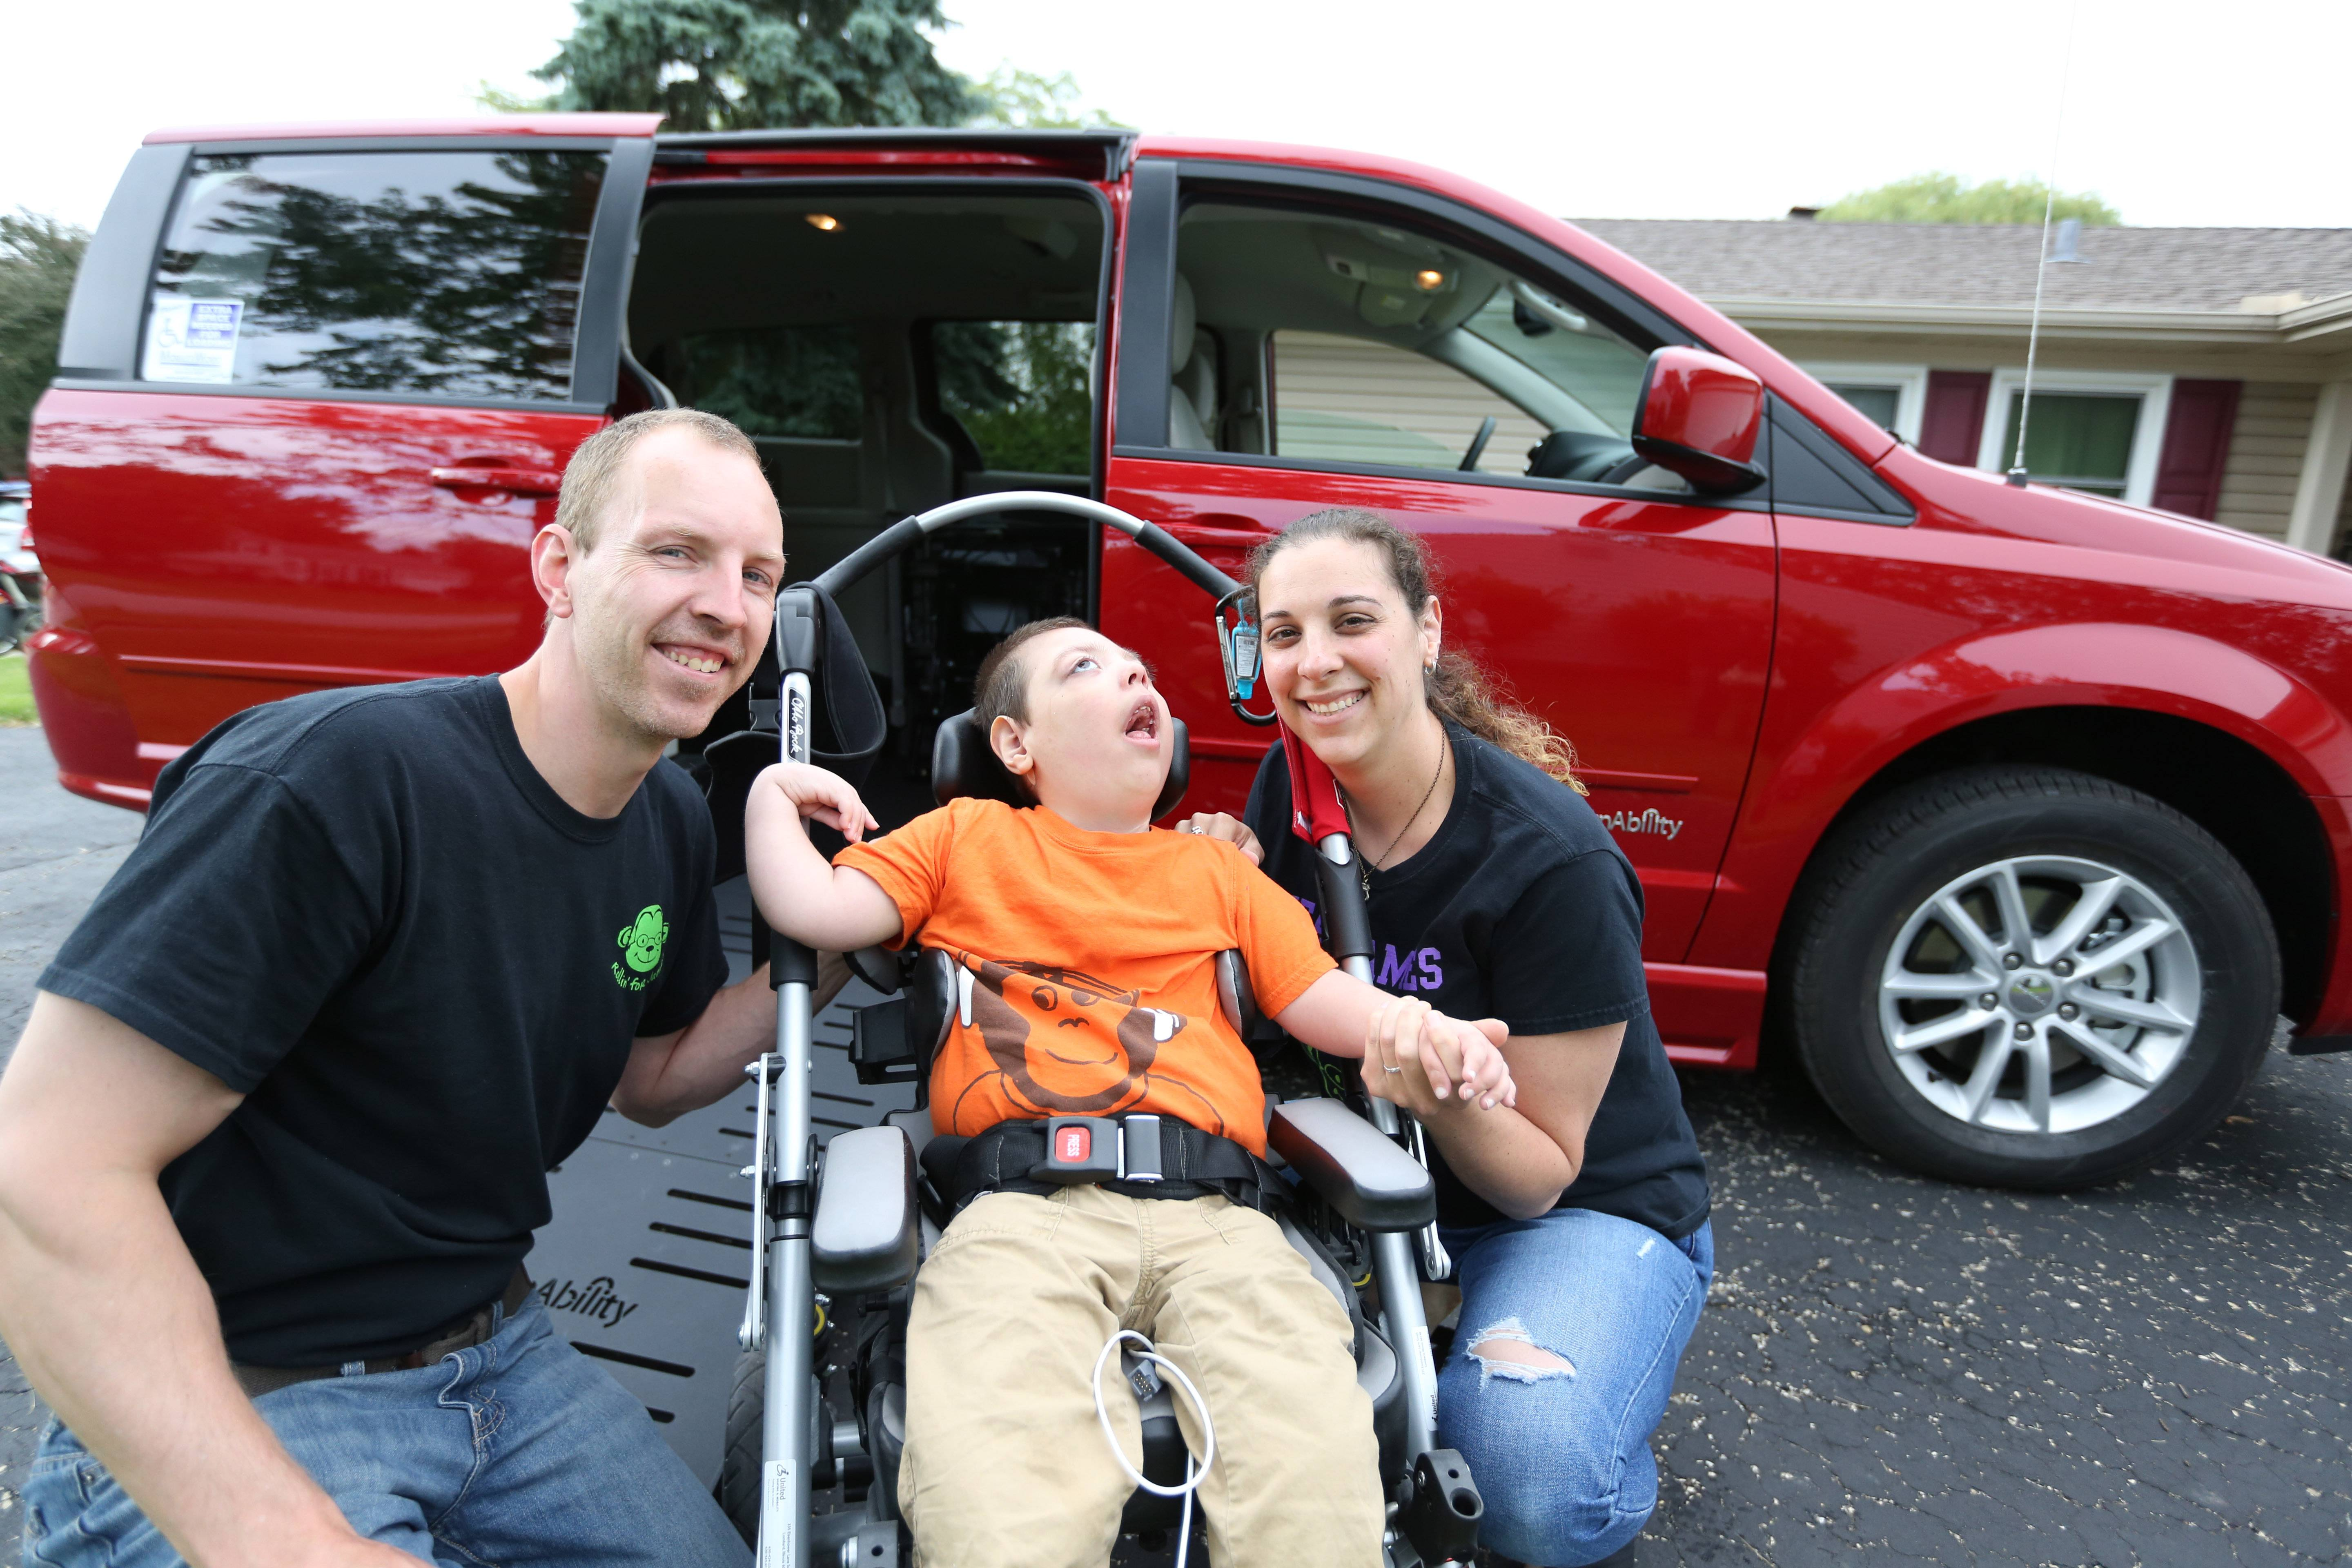 Purchased with proceeds from a fundraiser, this new wheelchair-accessible van makes it easier for Jeff and Stacy Fulkerson of Schaumburg to go places with their son, James.